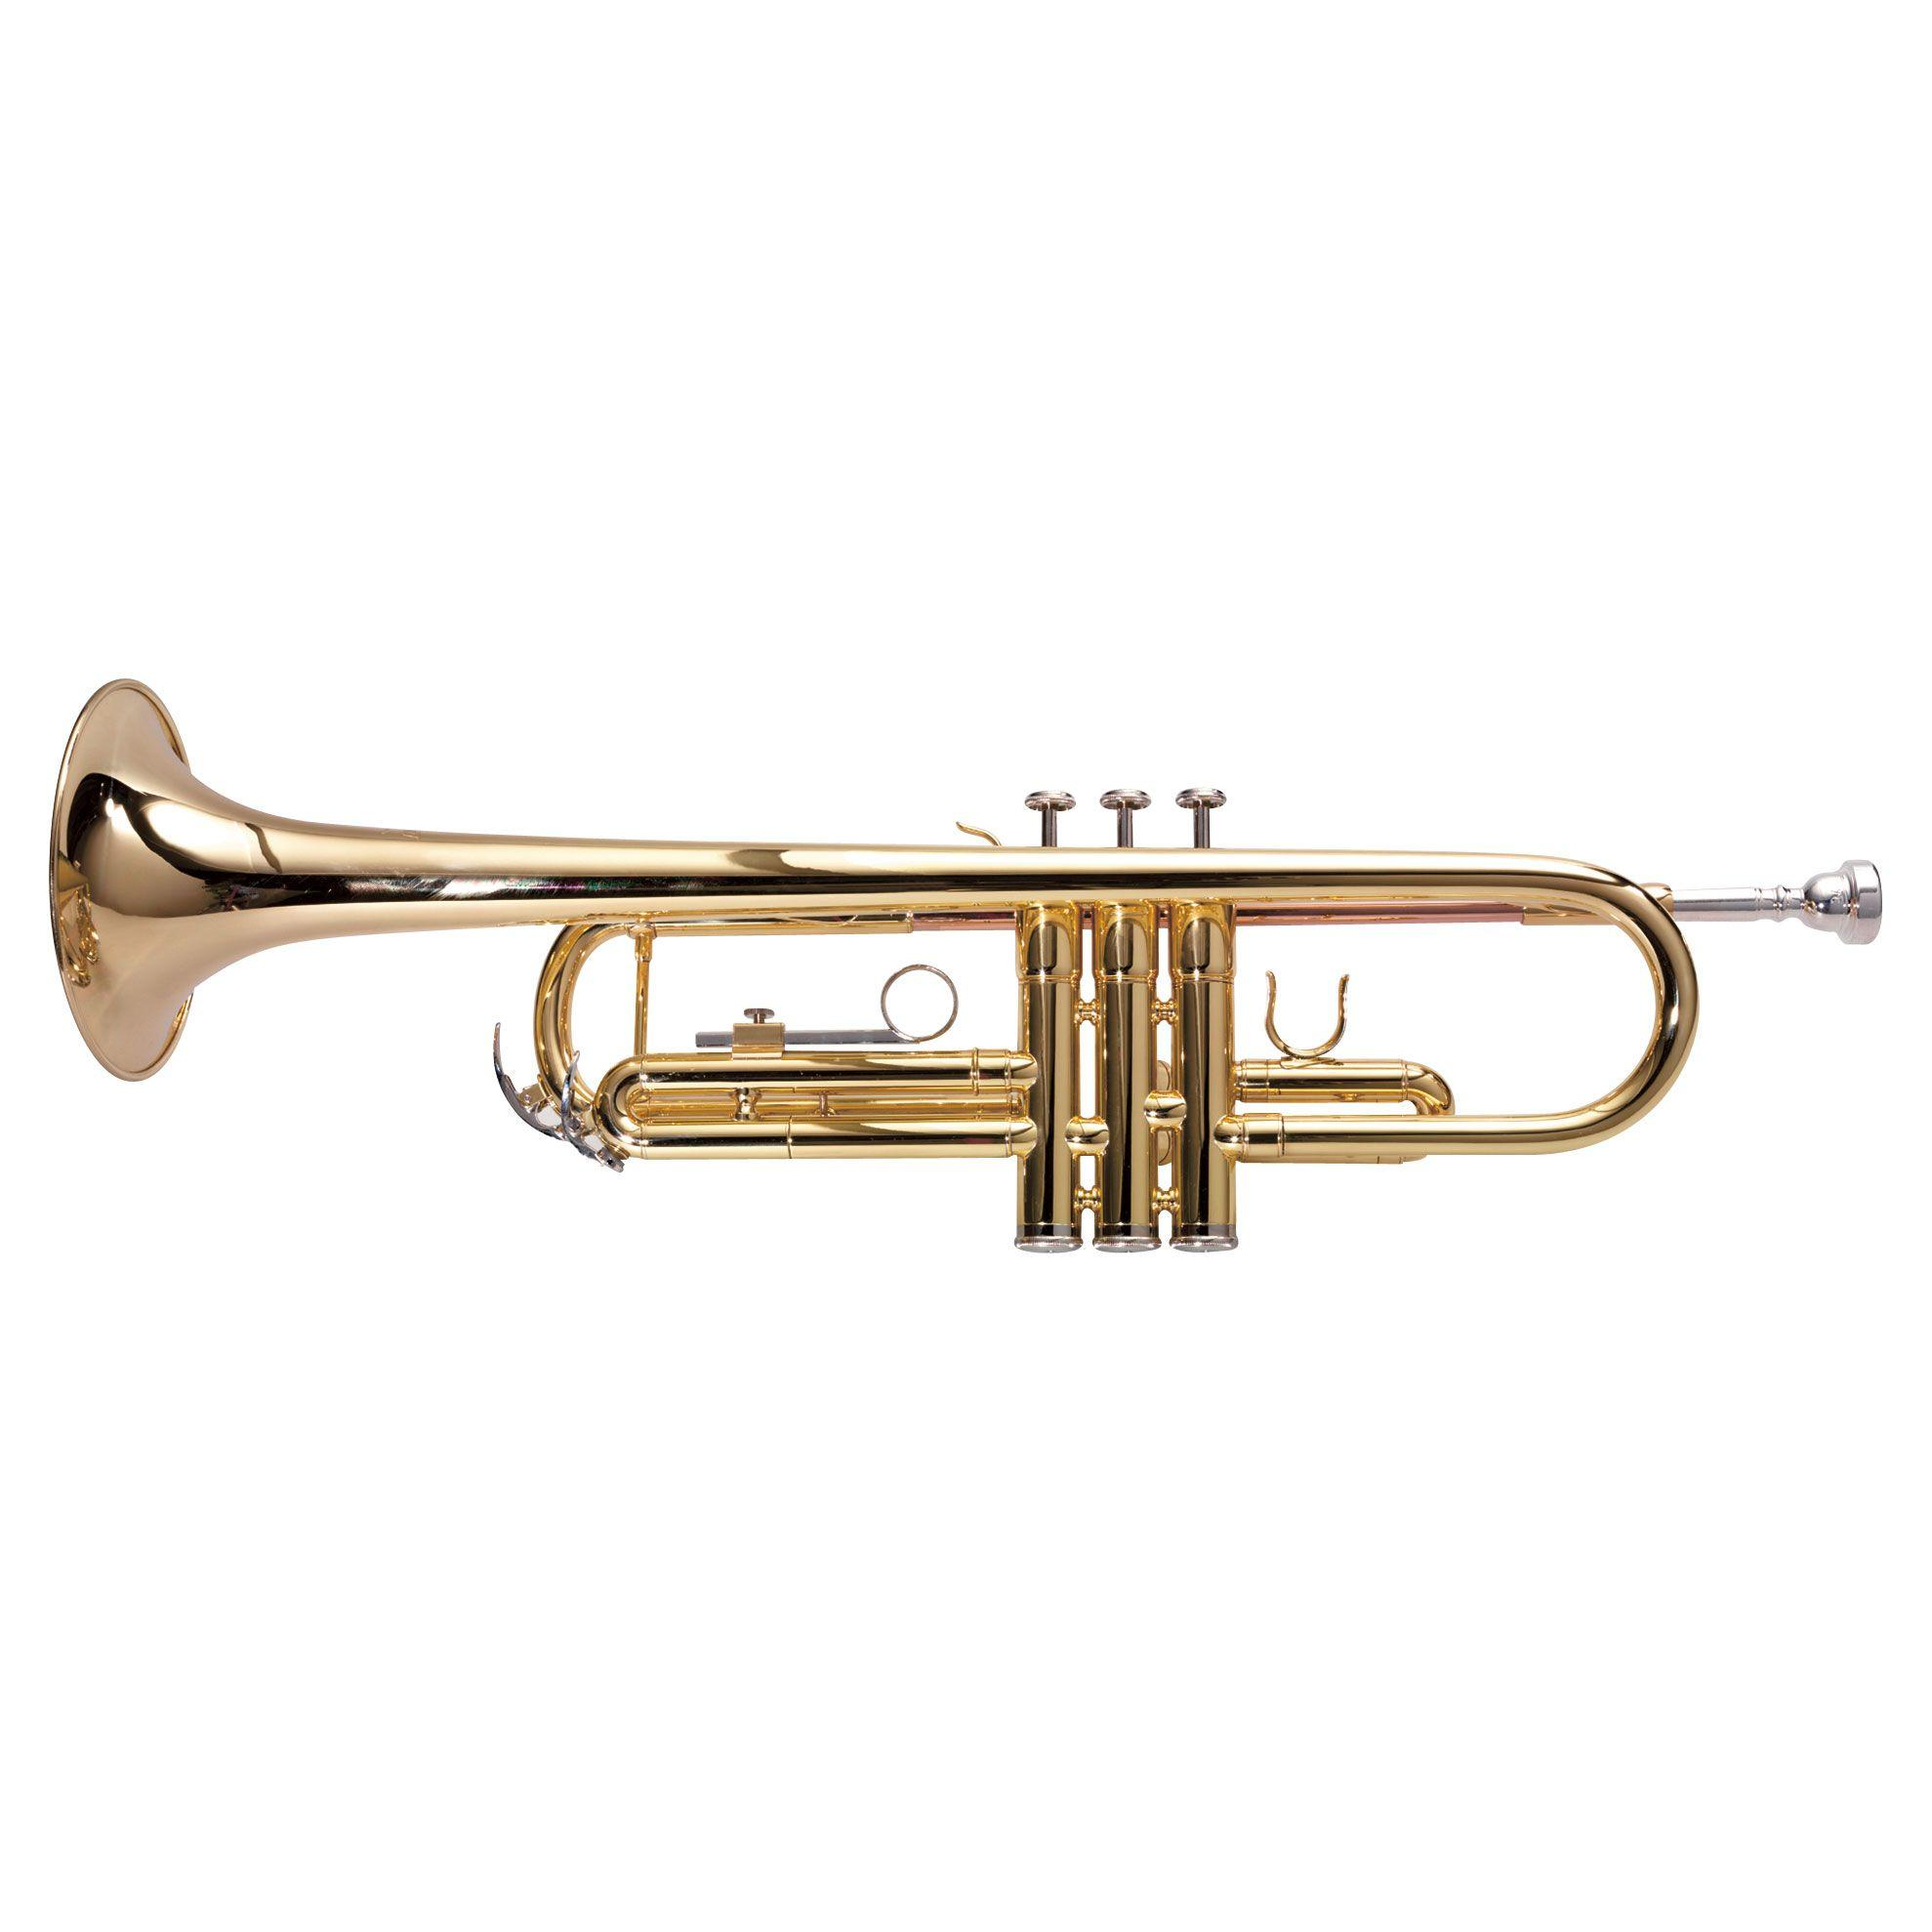 HD Trumpet Wallpapers and Photos